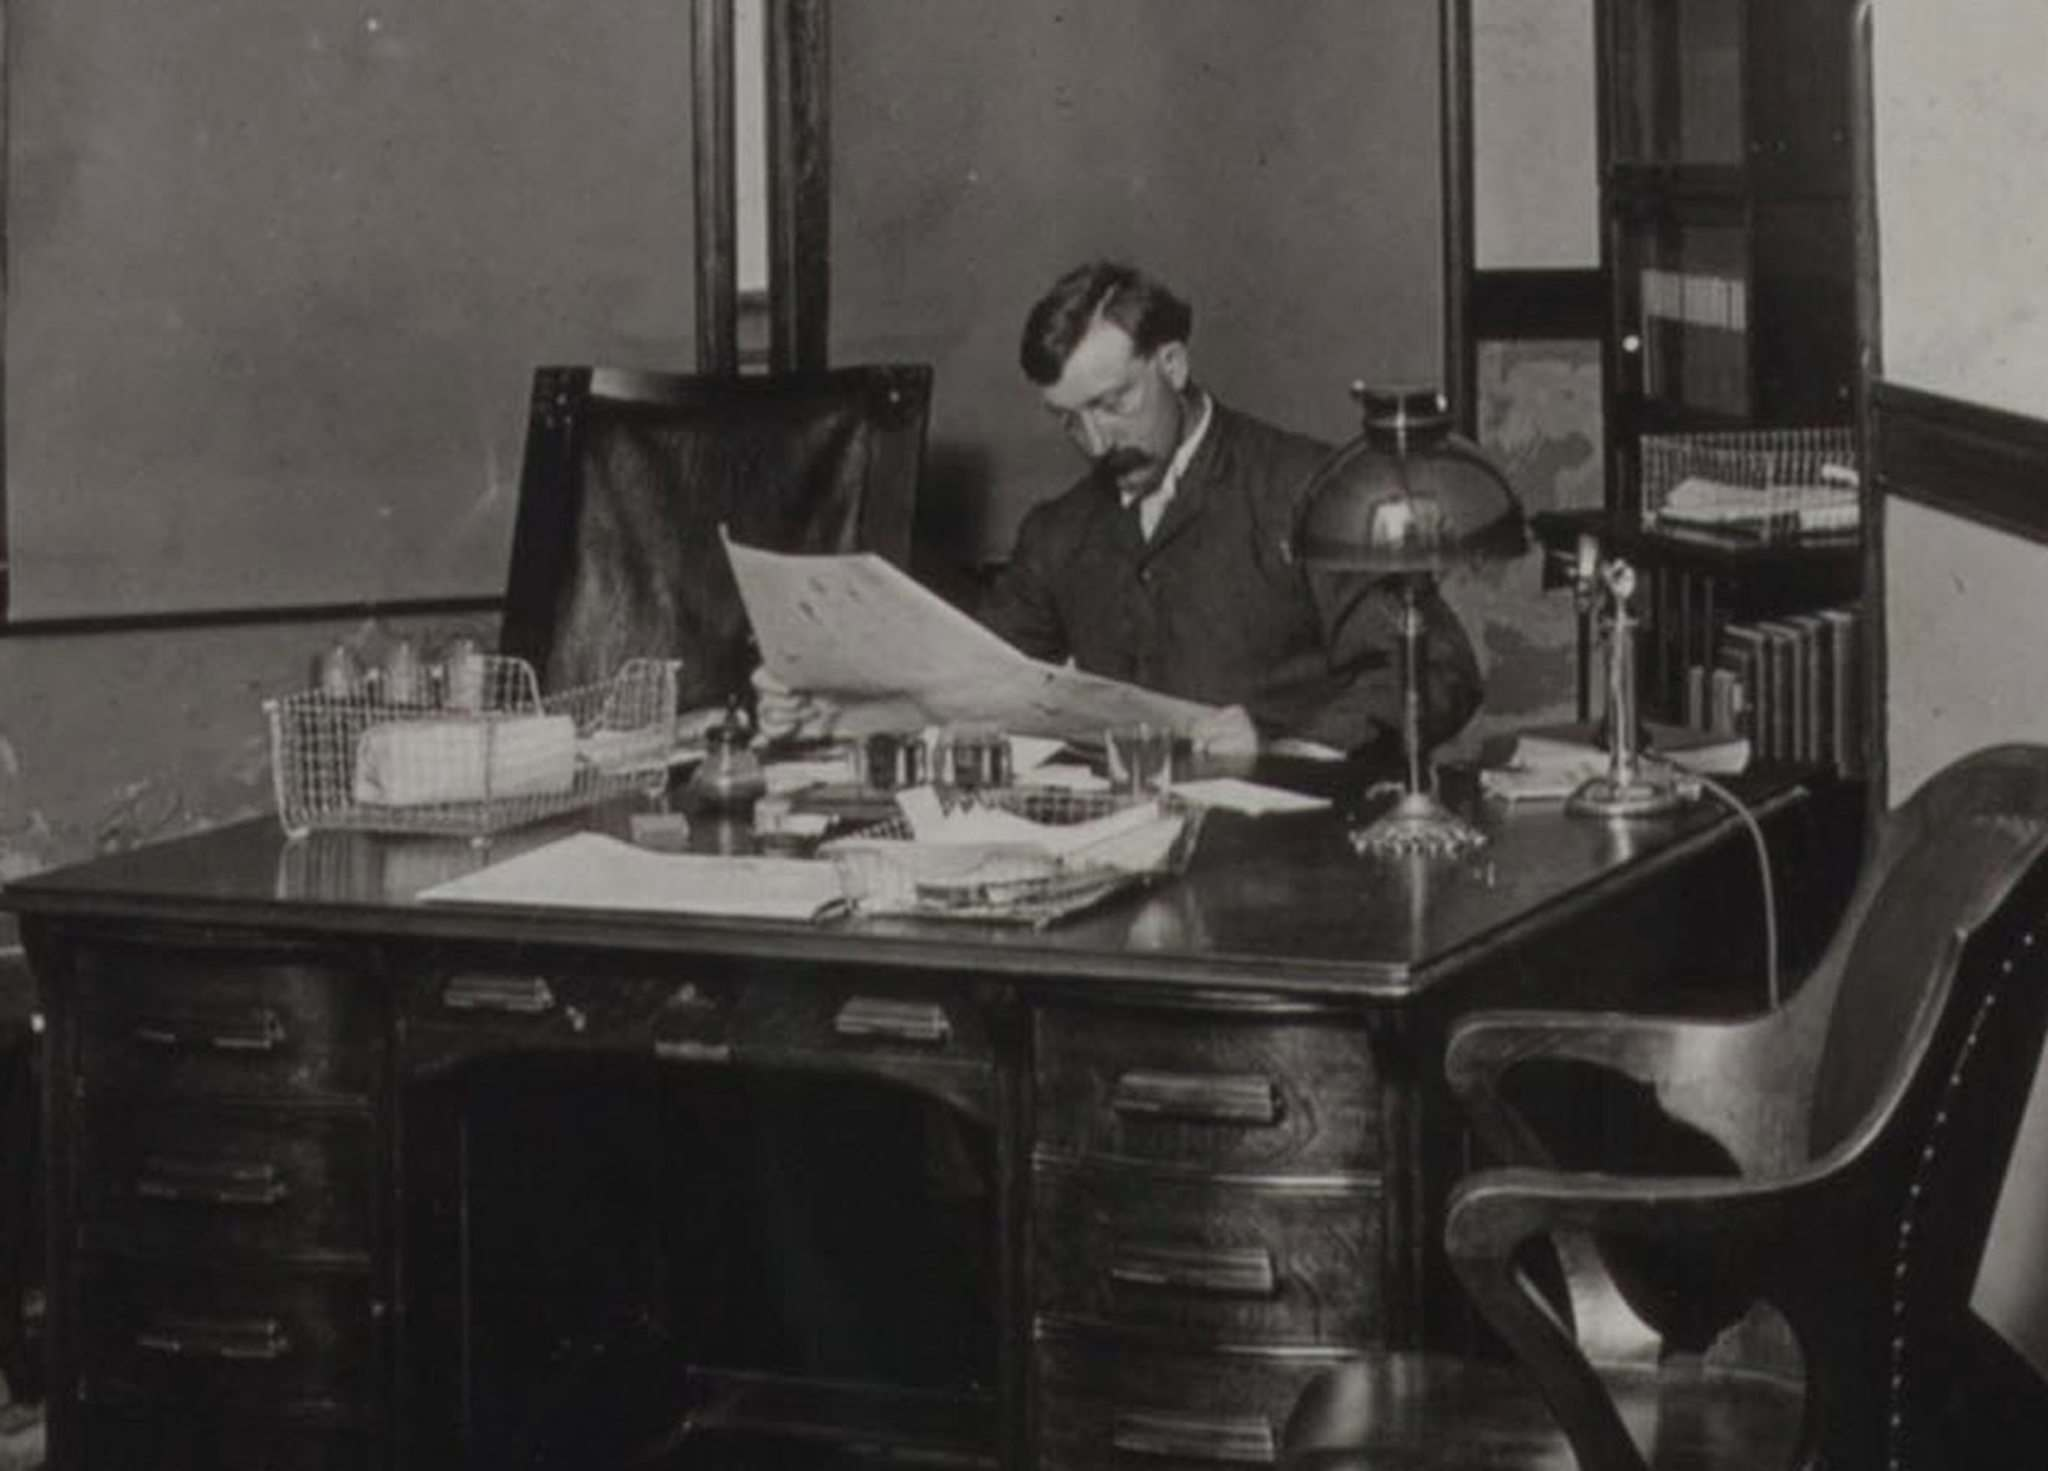 WINNIPEG FREE PRESS ARCHIVES</p><p>Free Press editor John W. Dafoe warned Winnipeggers that the effects of the 1919 general strike would continue to be felt long after the dispute ended.</p>